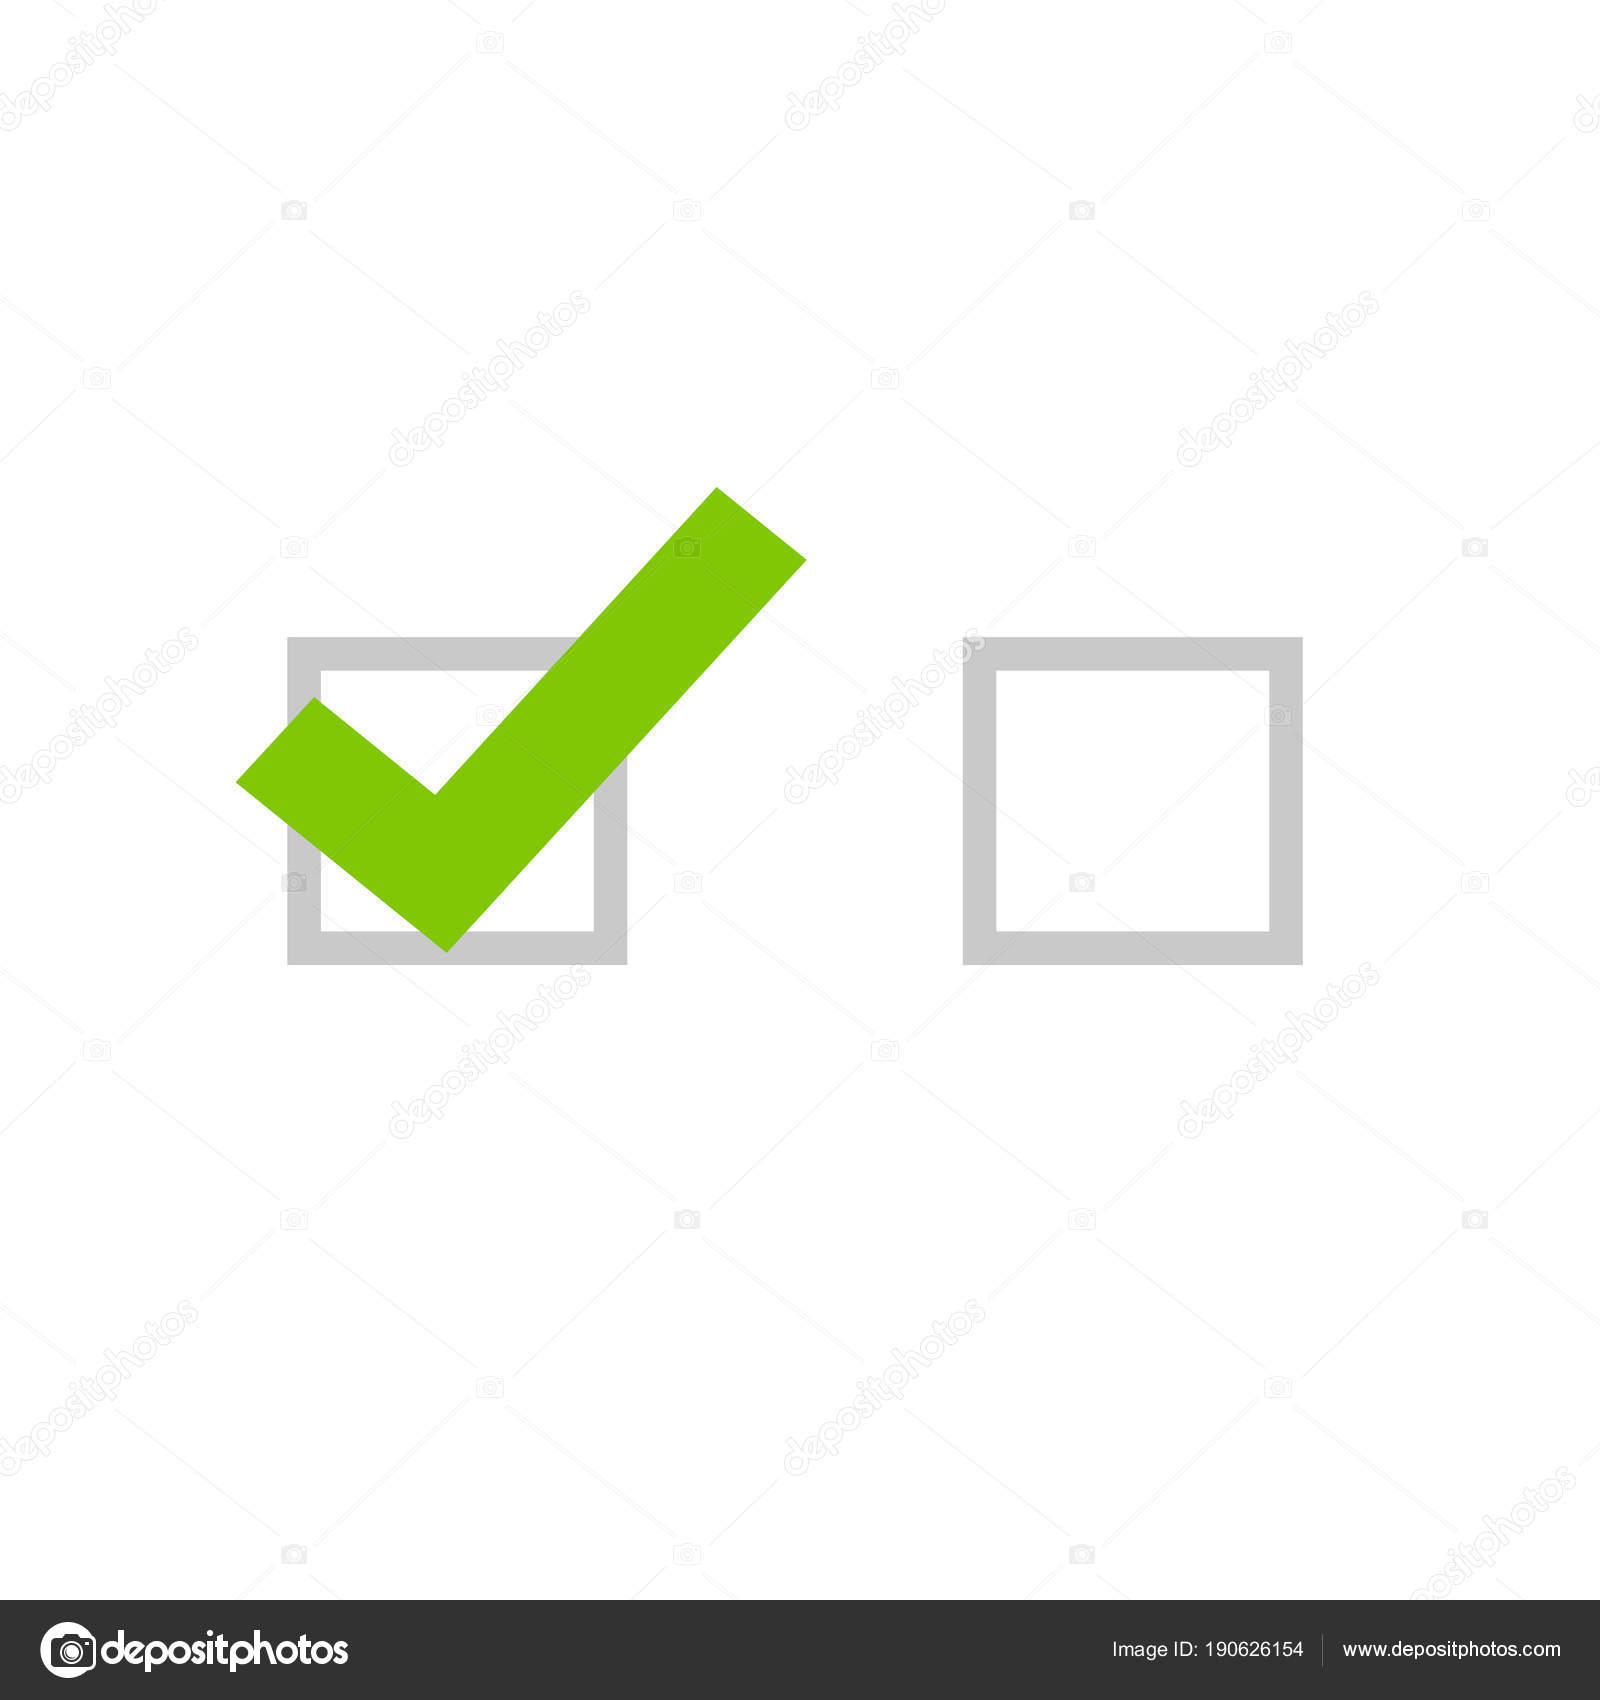 hight resolution of tick icon vector symbol flat cartoon green checkmark isolated on white background checked and